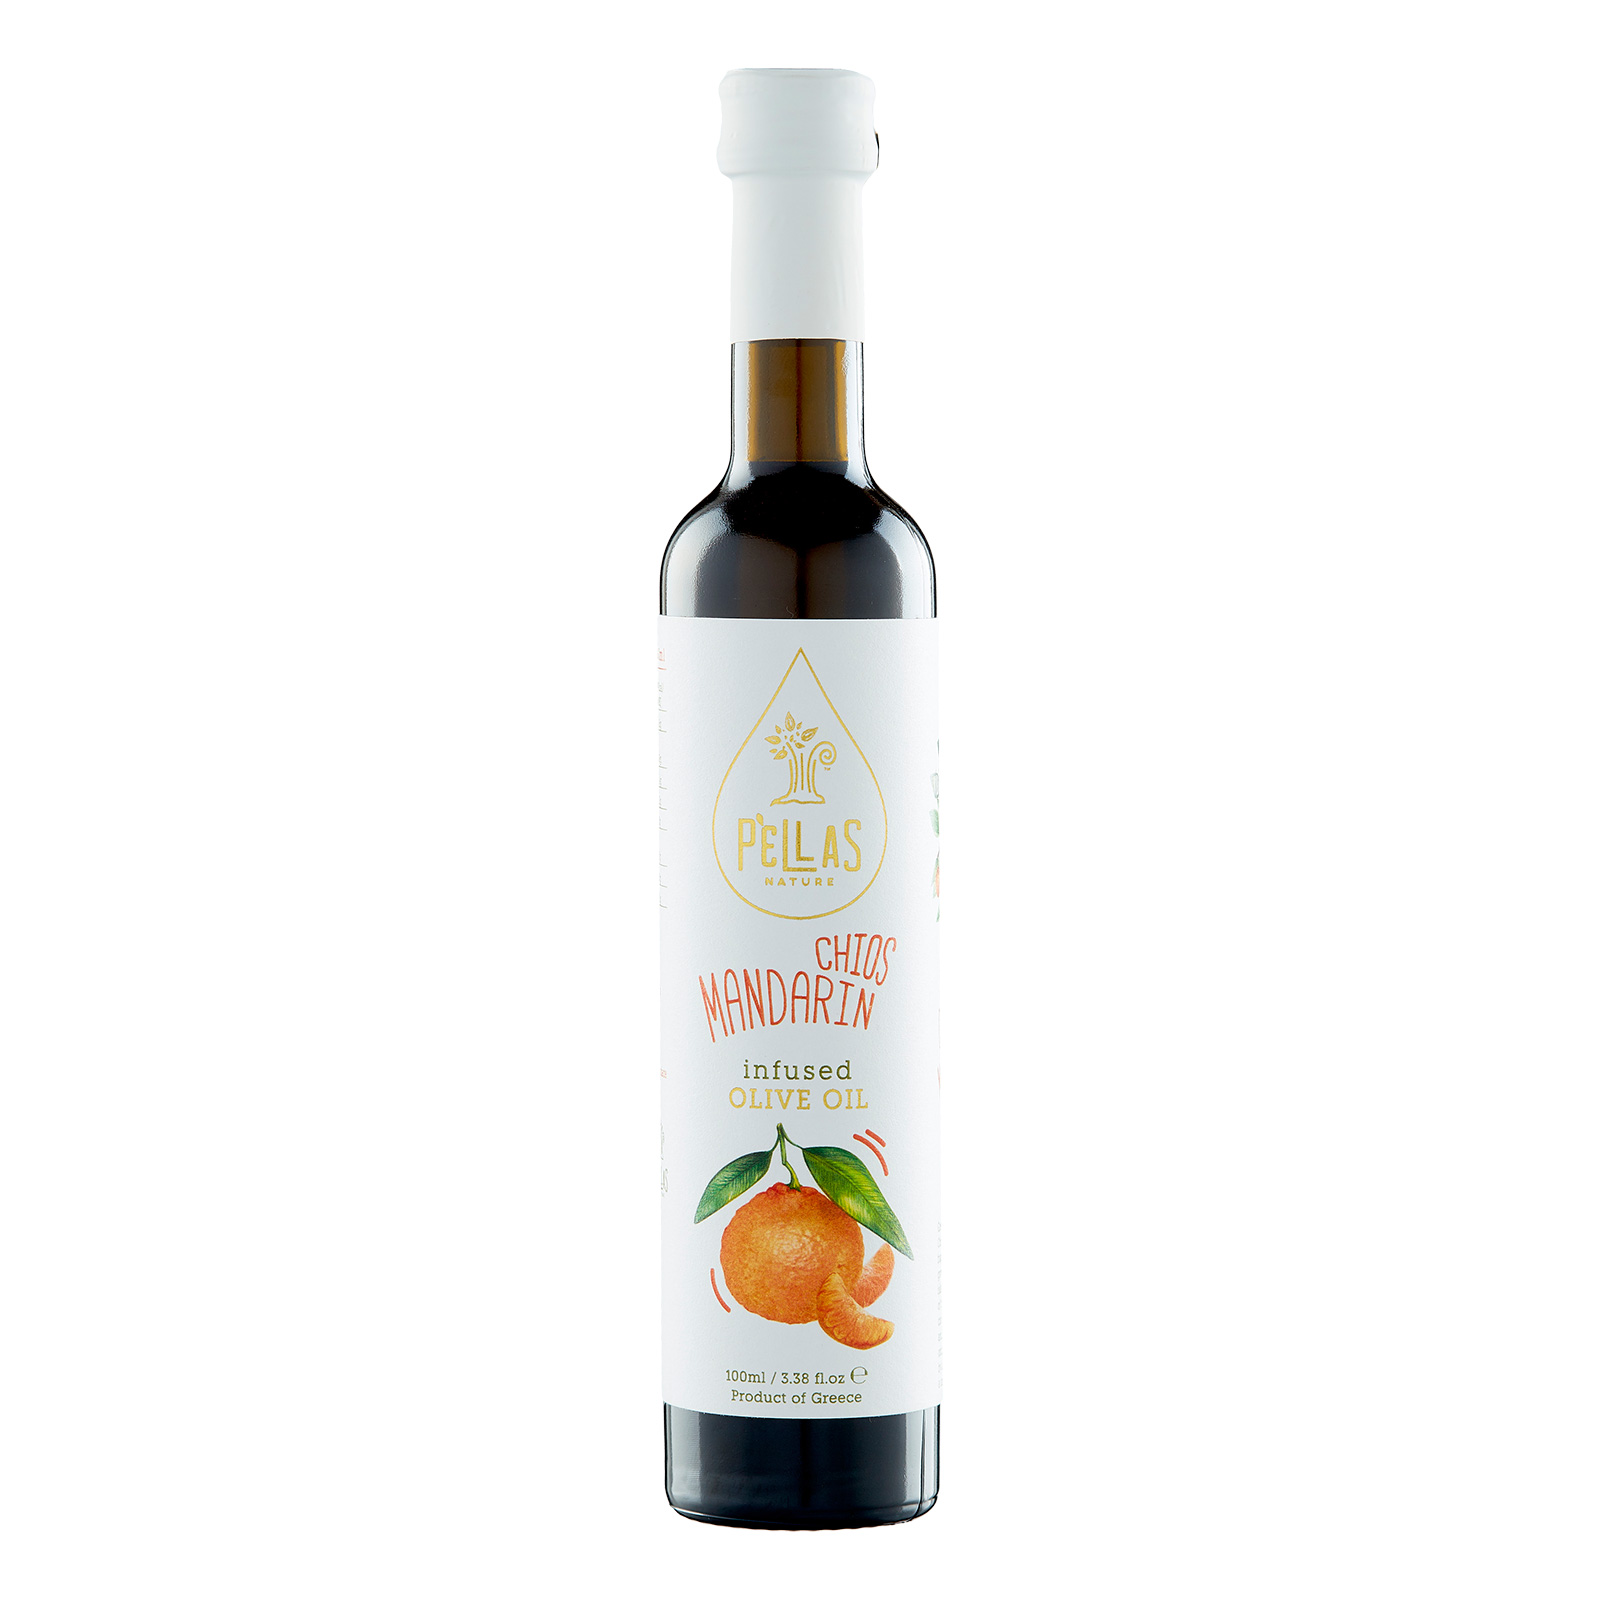 Pellas Nature Chios Mandarin infused Extra Virgin Olive Oil 3.38 fl.oz Bottle